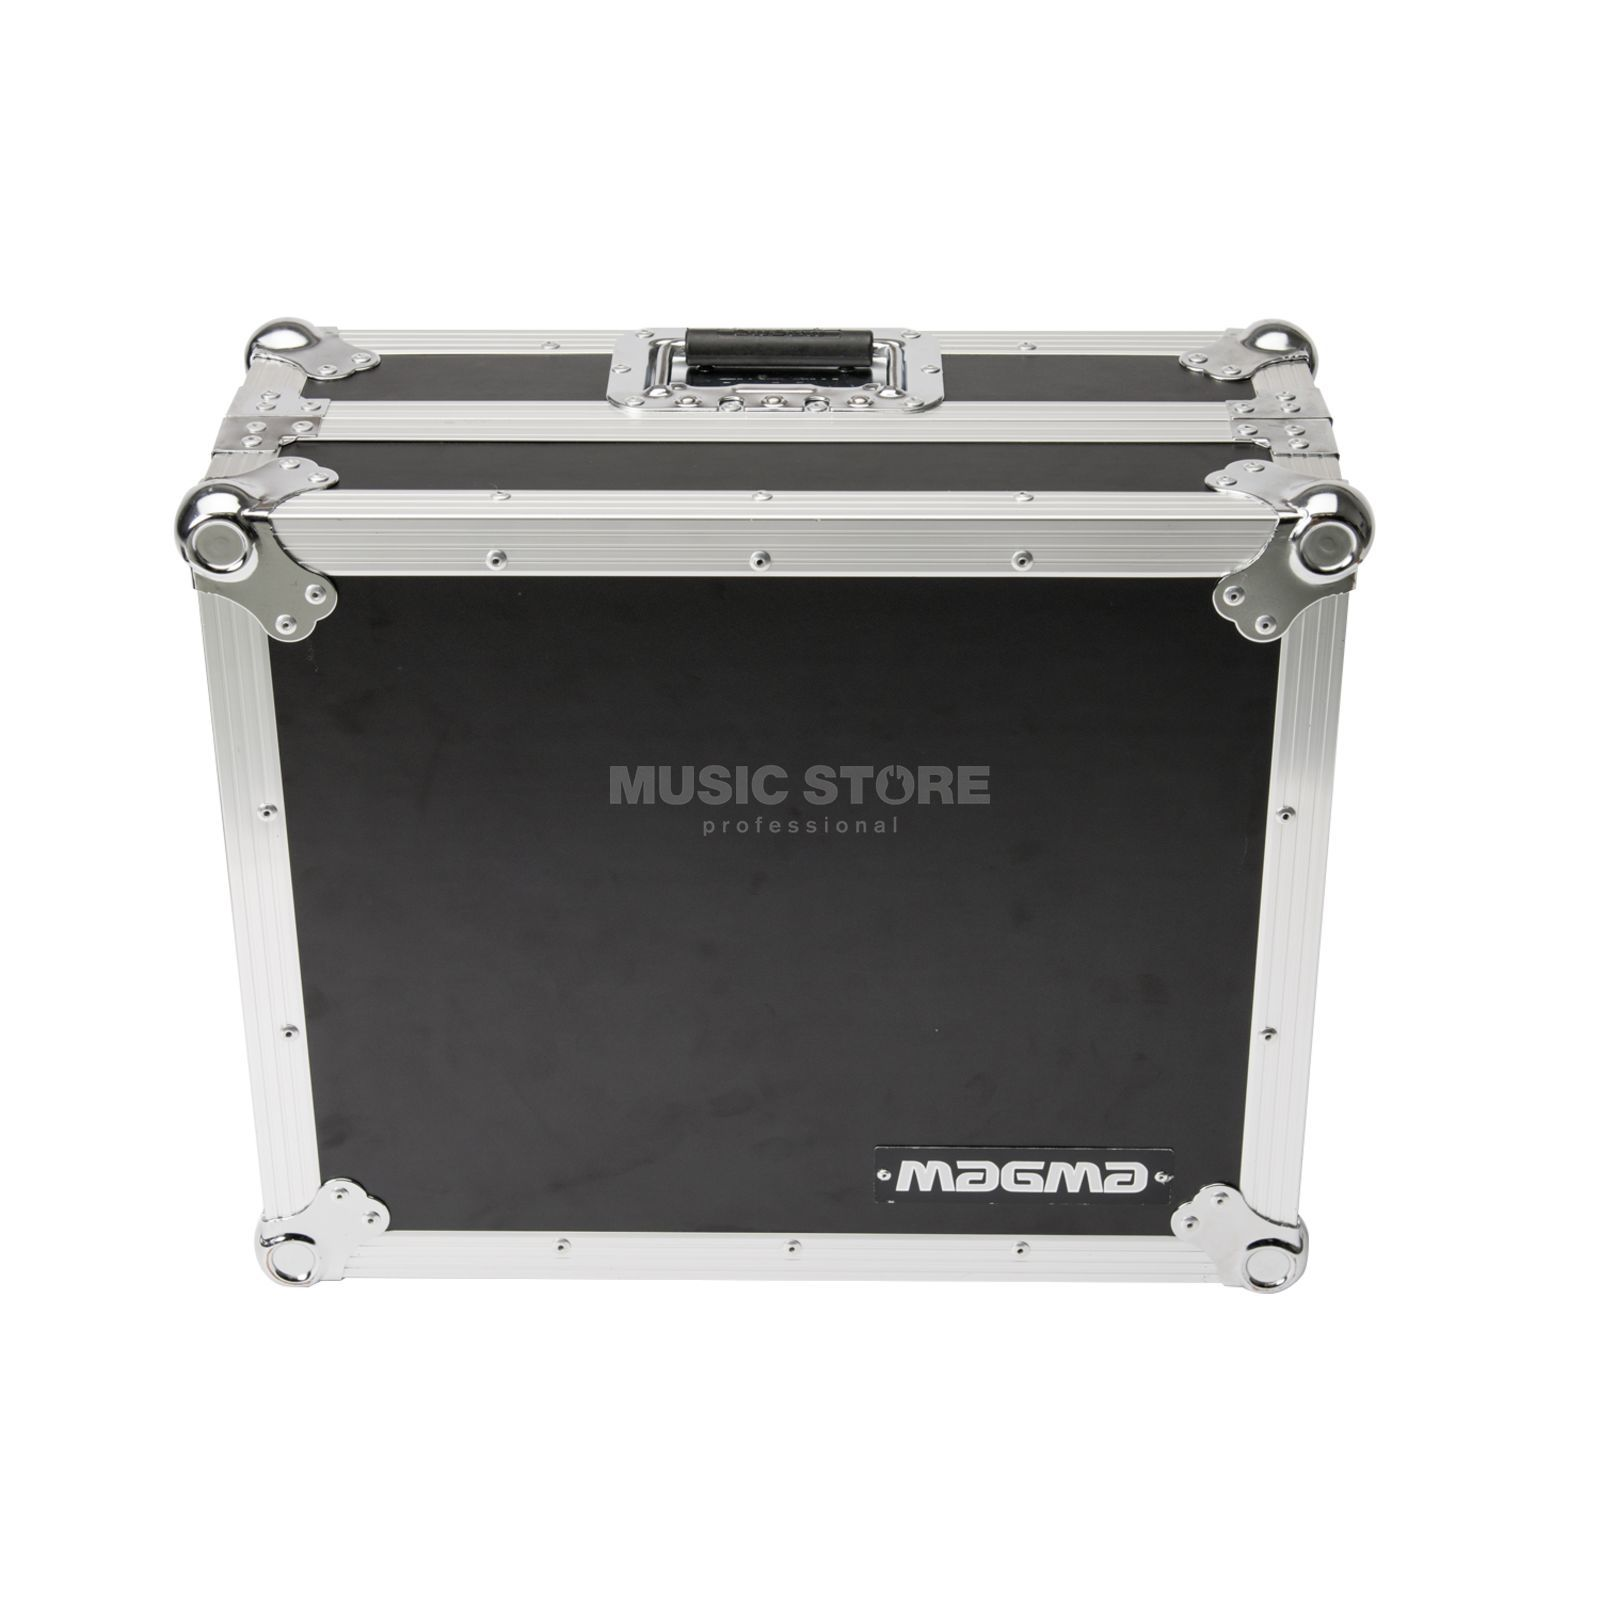 Magma Multi-Format Turntable-Case Produktbillede